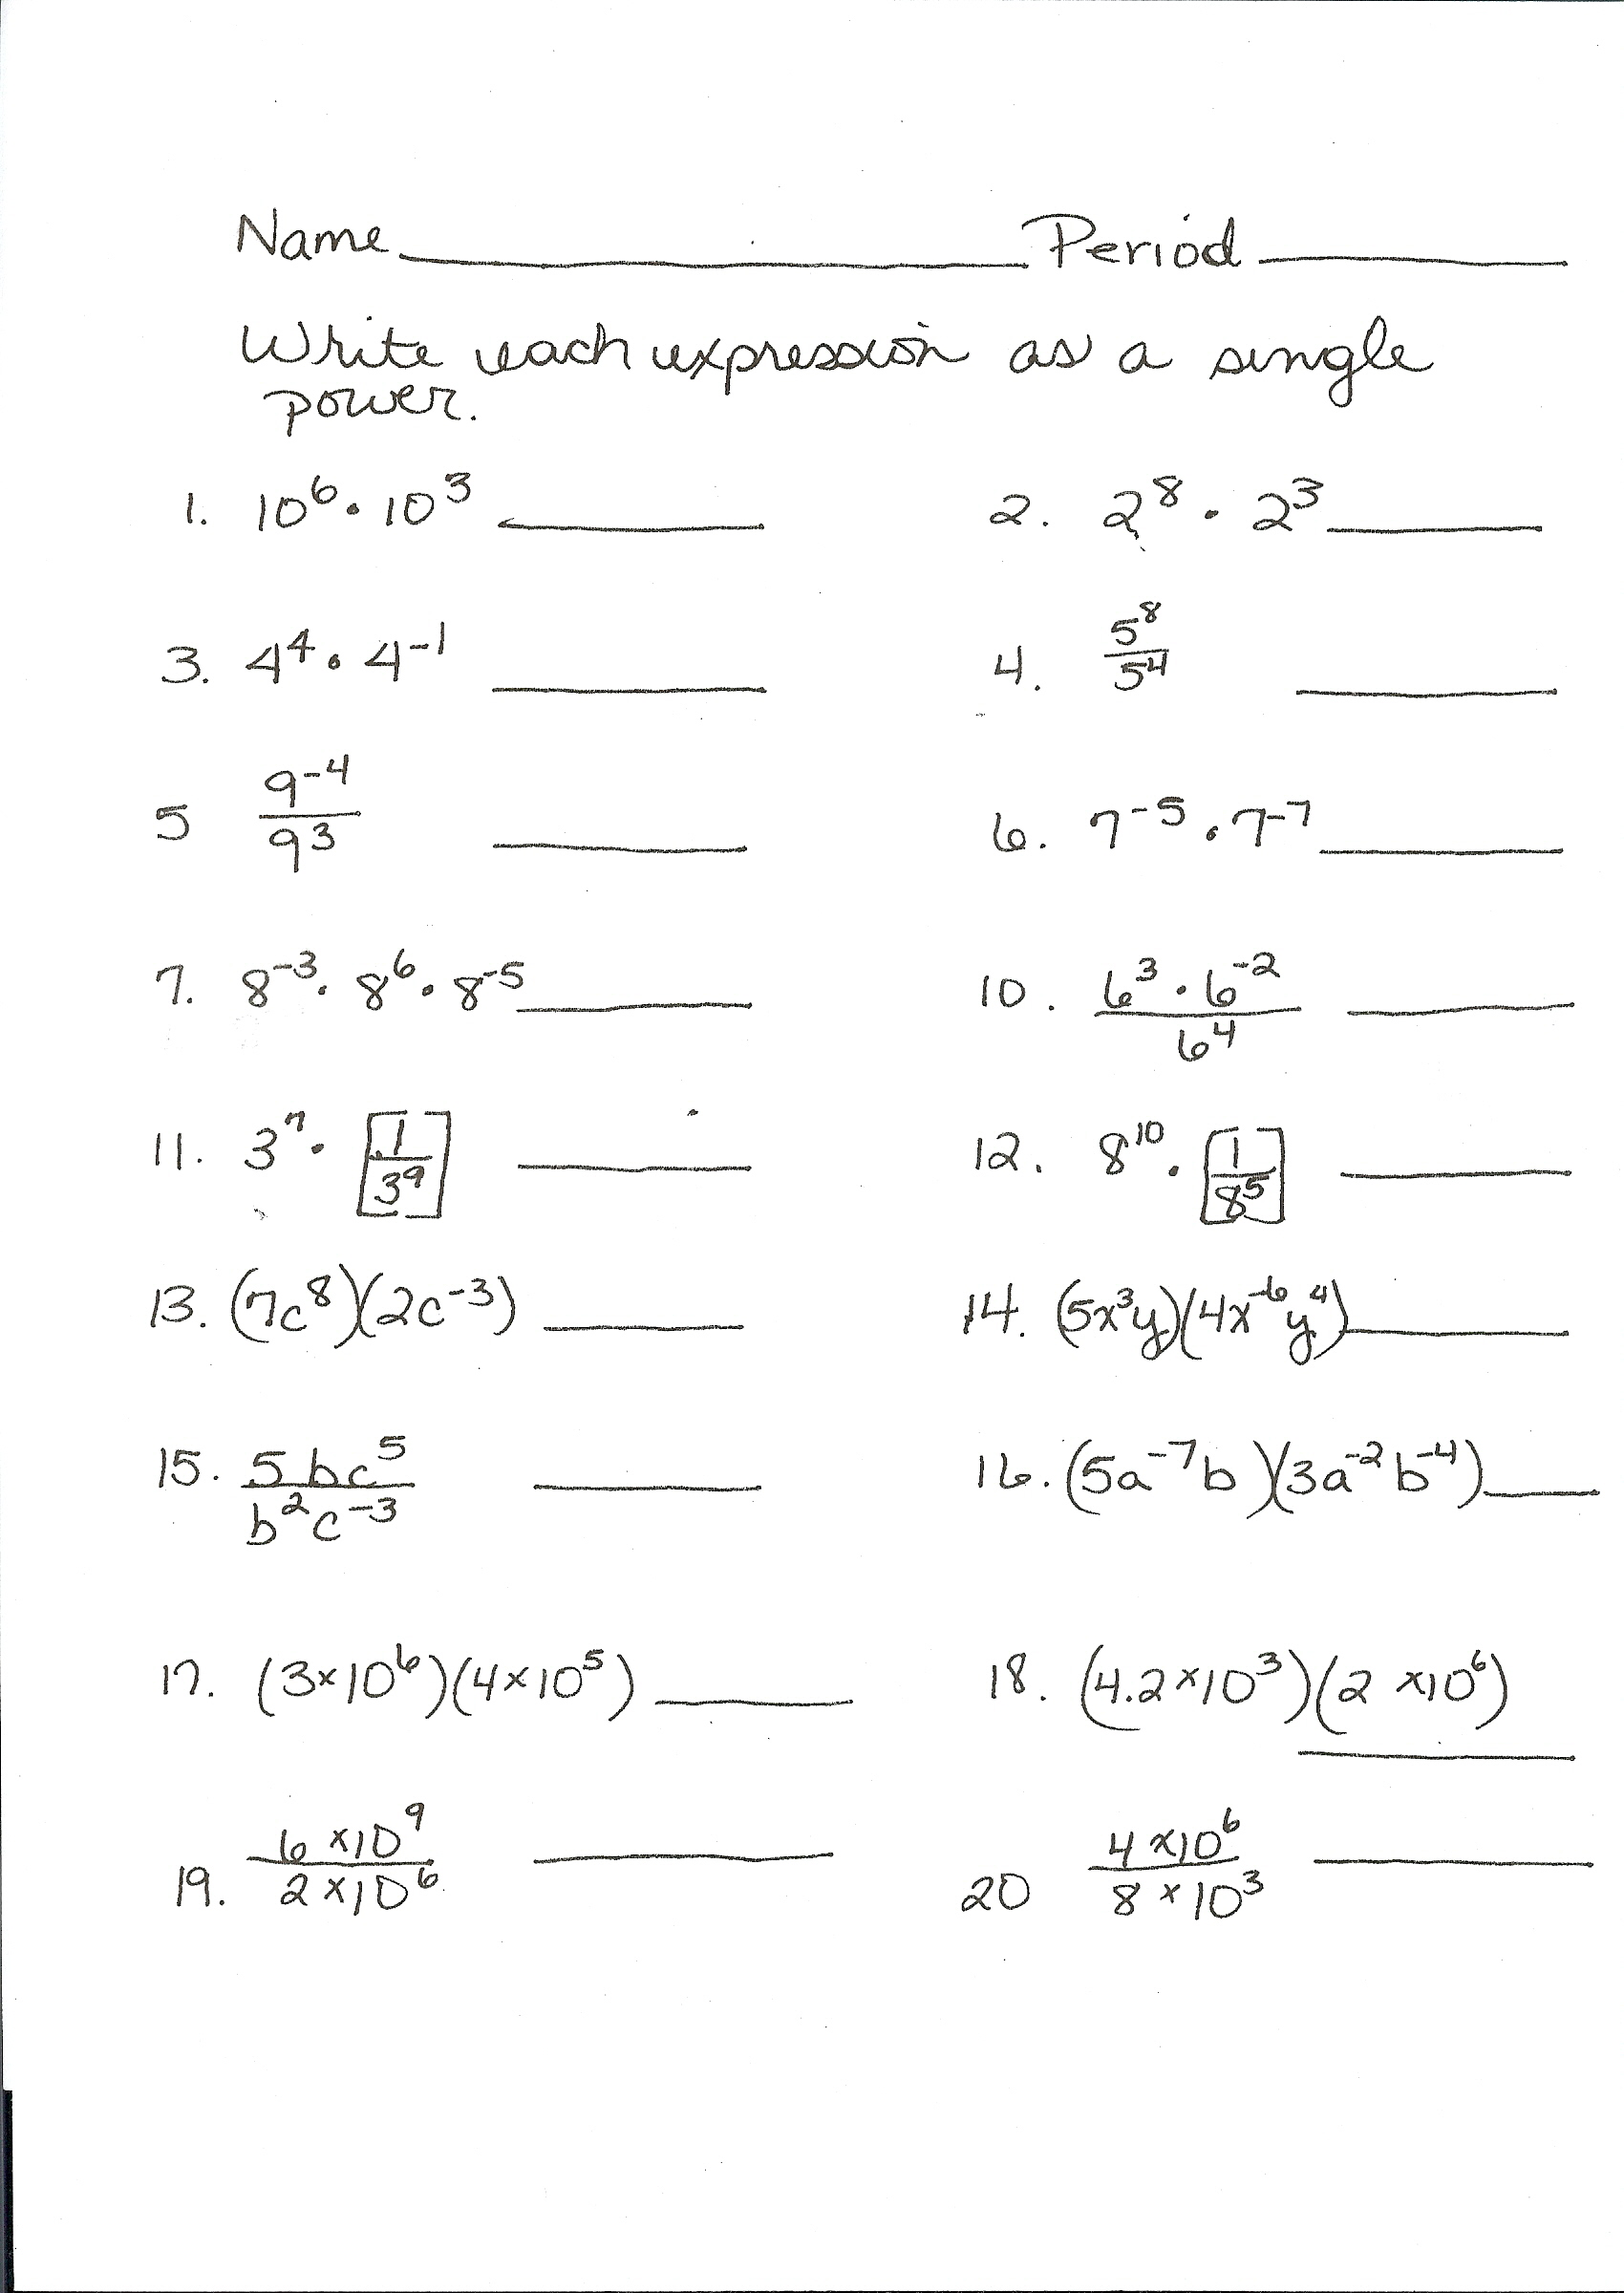 worksheet Adding Exponents Worksheet worksheet algebra 1 exponents worksheets grass fedjp birthrebirth the emotional anatomy of a c section exponent subtracting integers word problems adding and expo